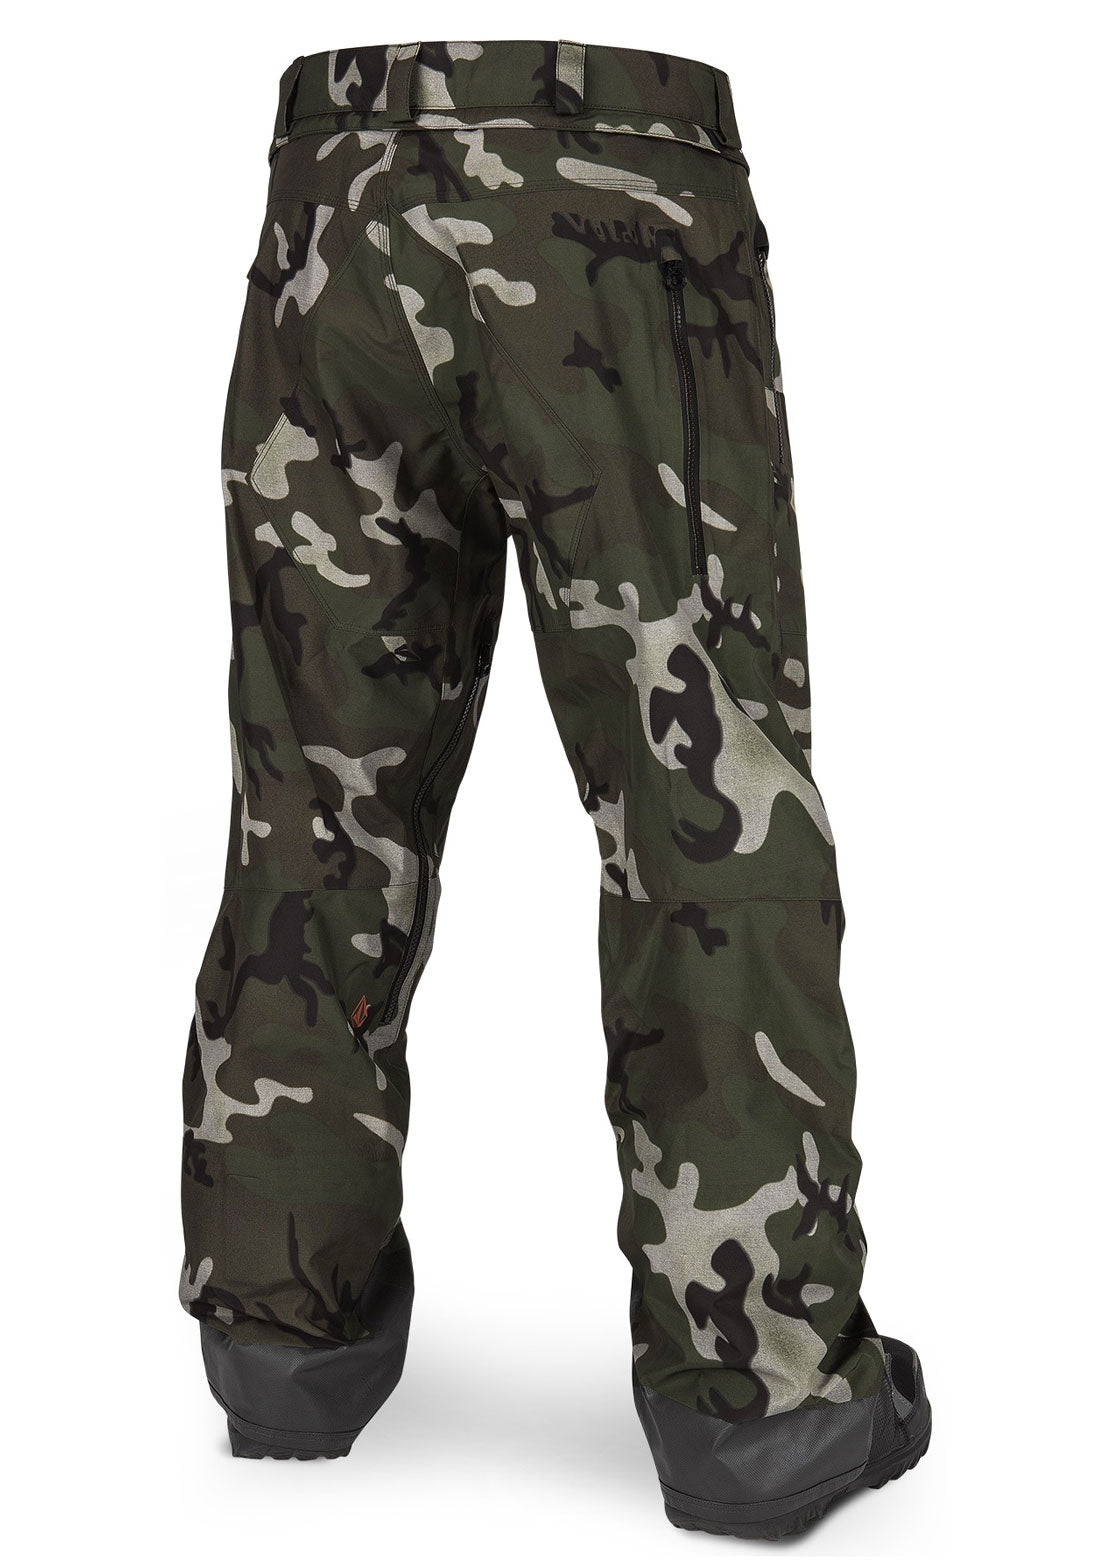 Volcom Men's Guide Gore-Tex Pants GI Camo